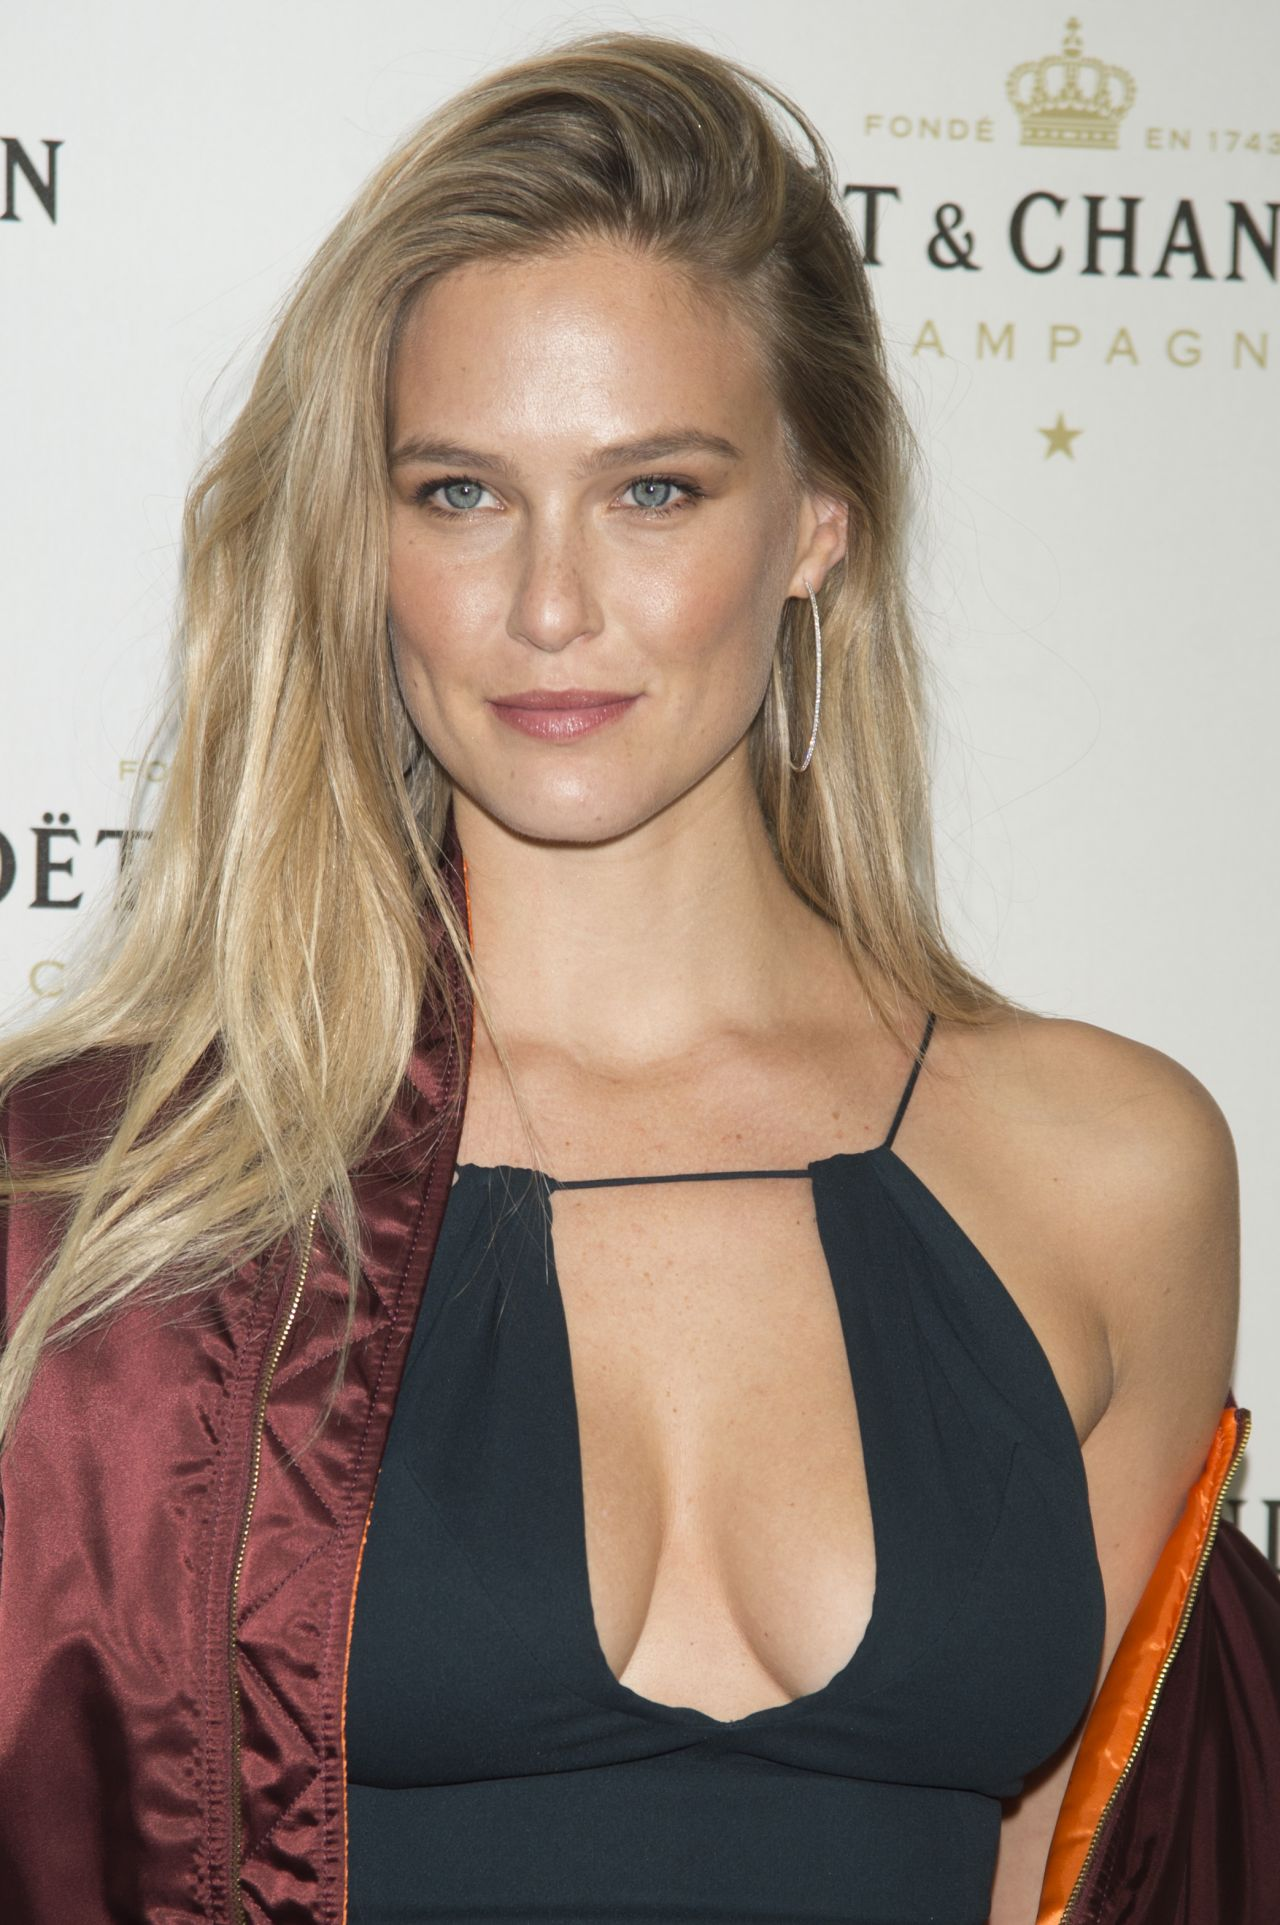 Bar Refaeli - Moet  Chandon Party In Madrid 1129 2016-8989